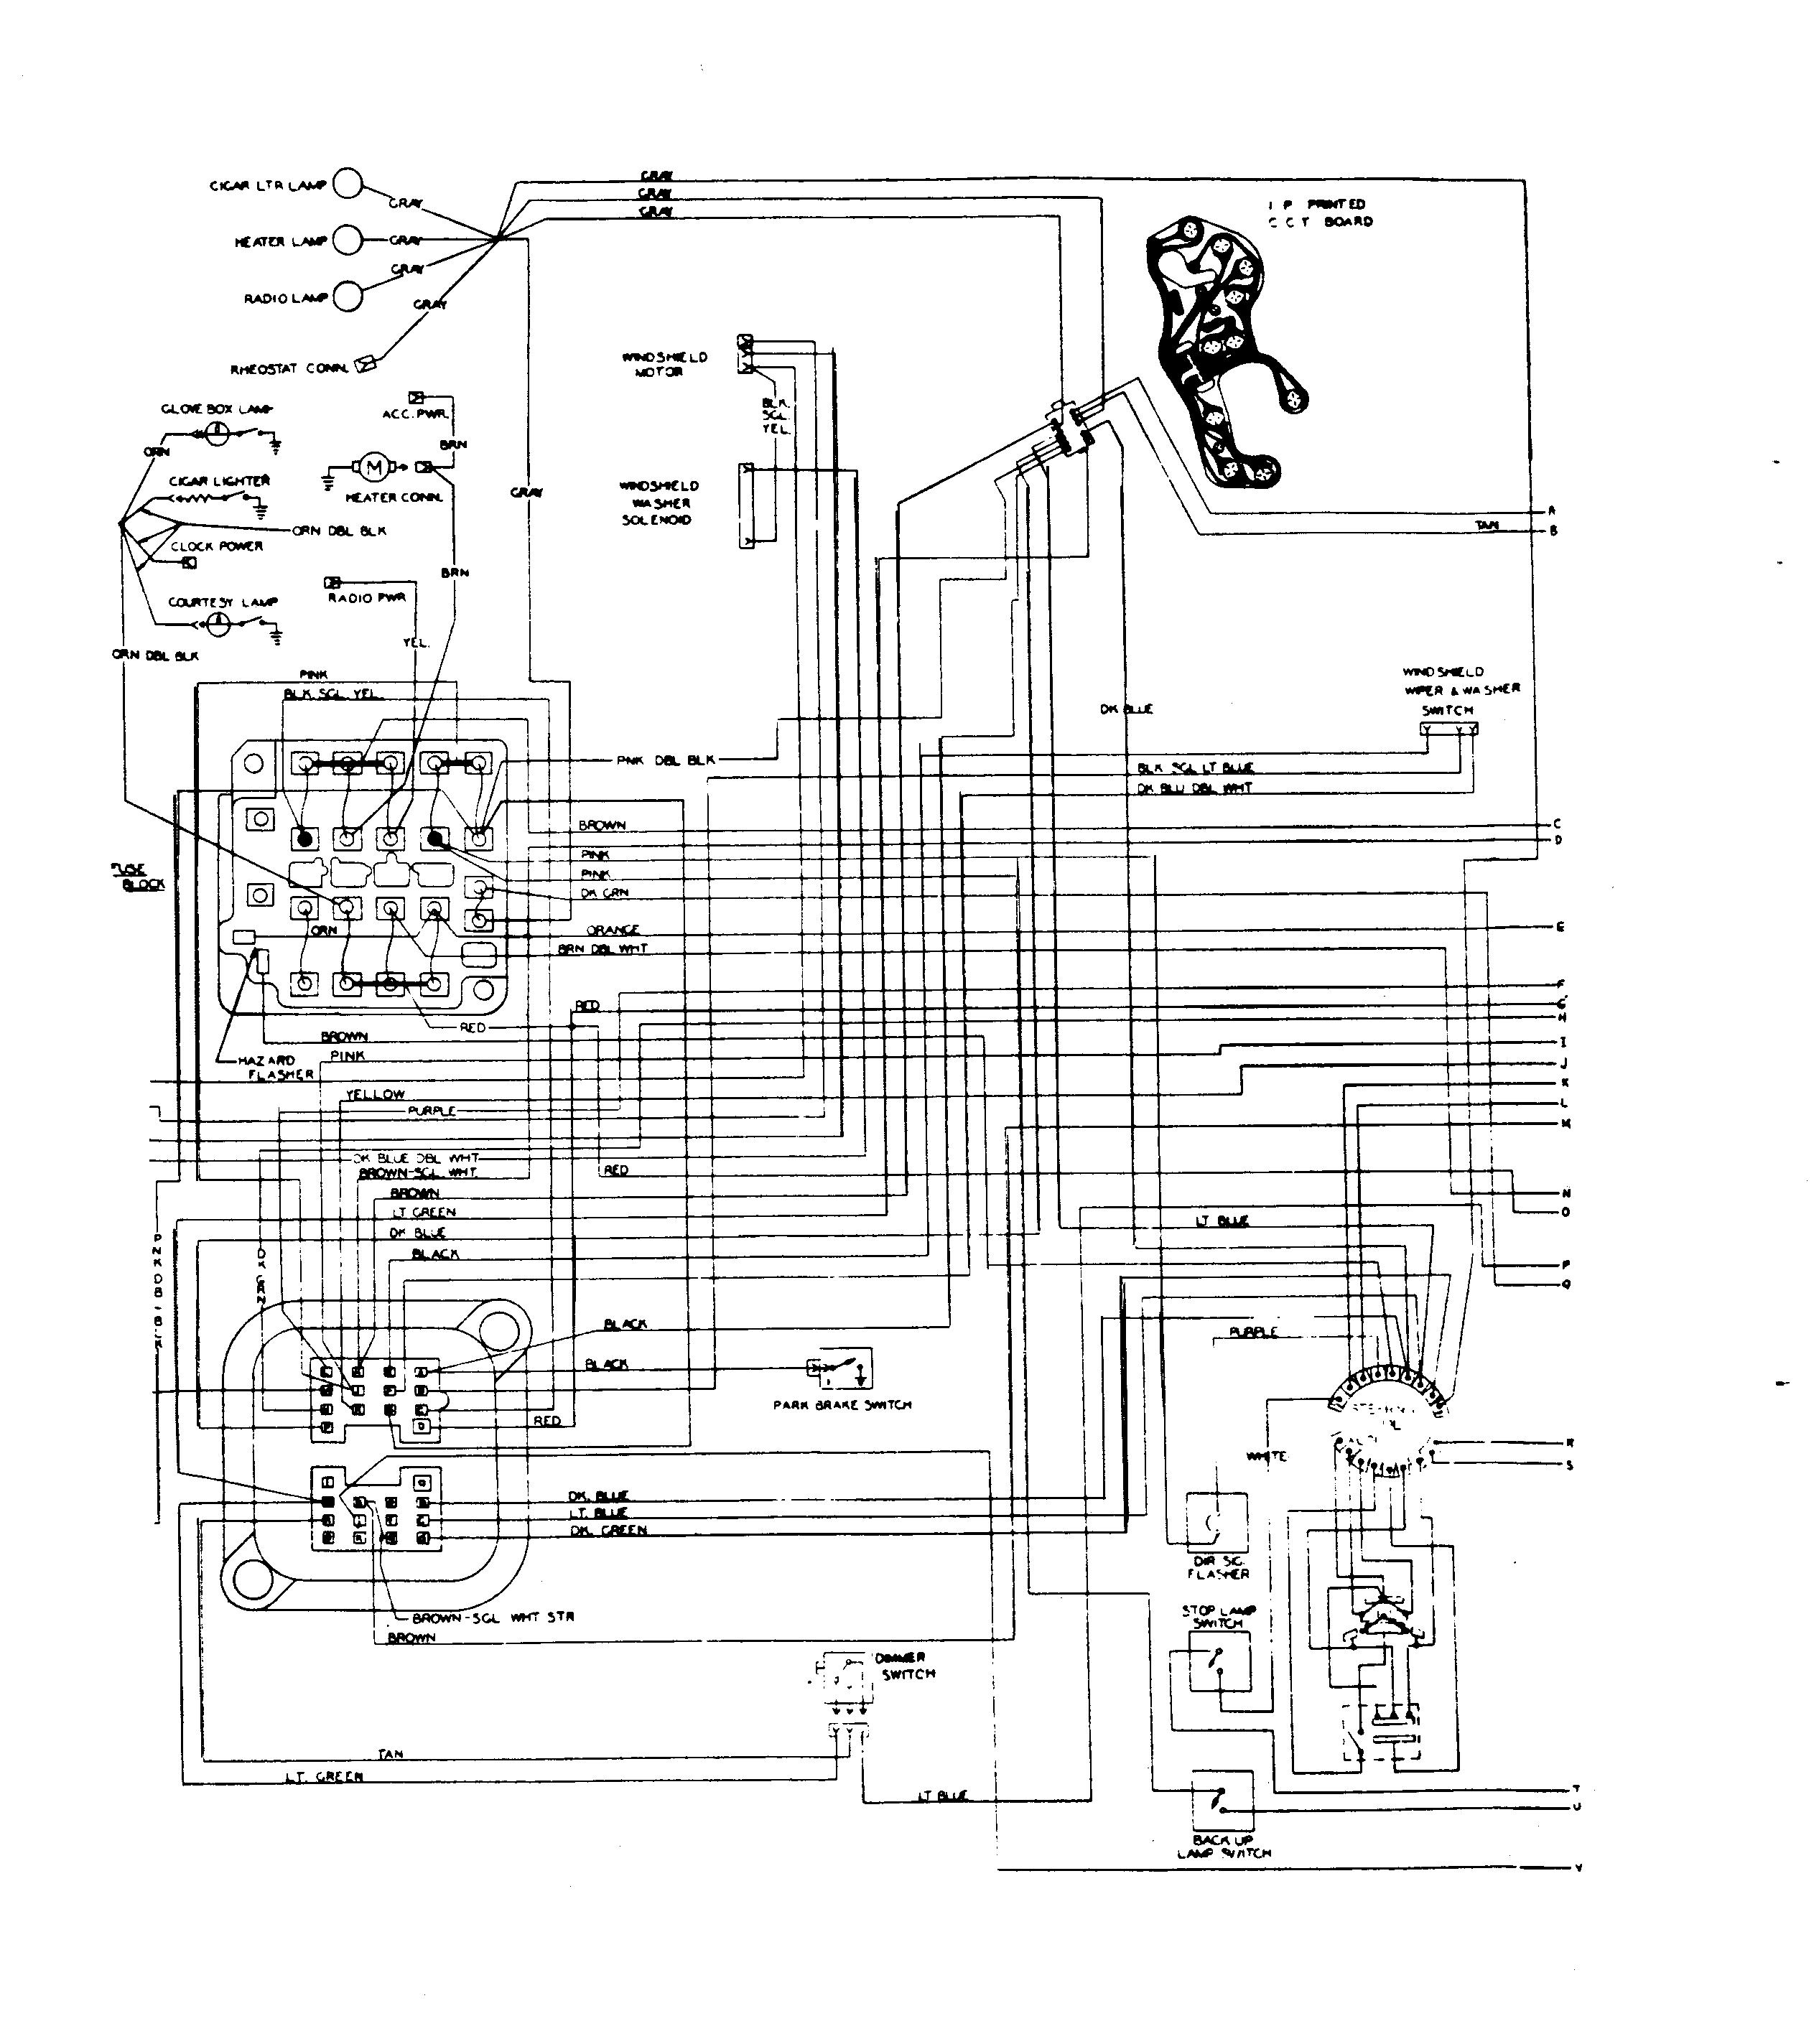 Wiring Diagram For 1966 Pontiac Tempest Wiring Library